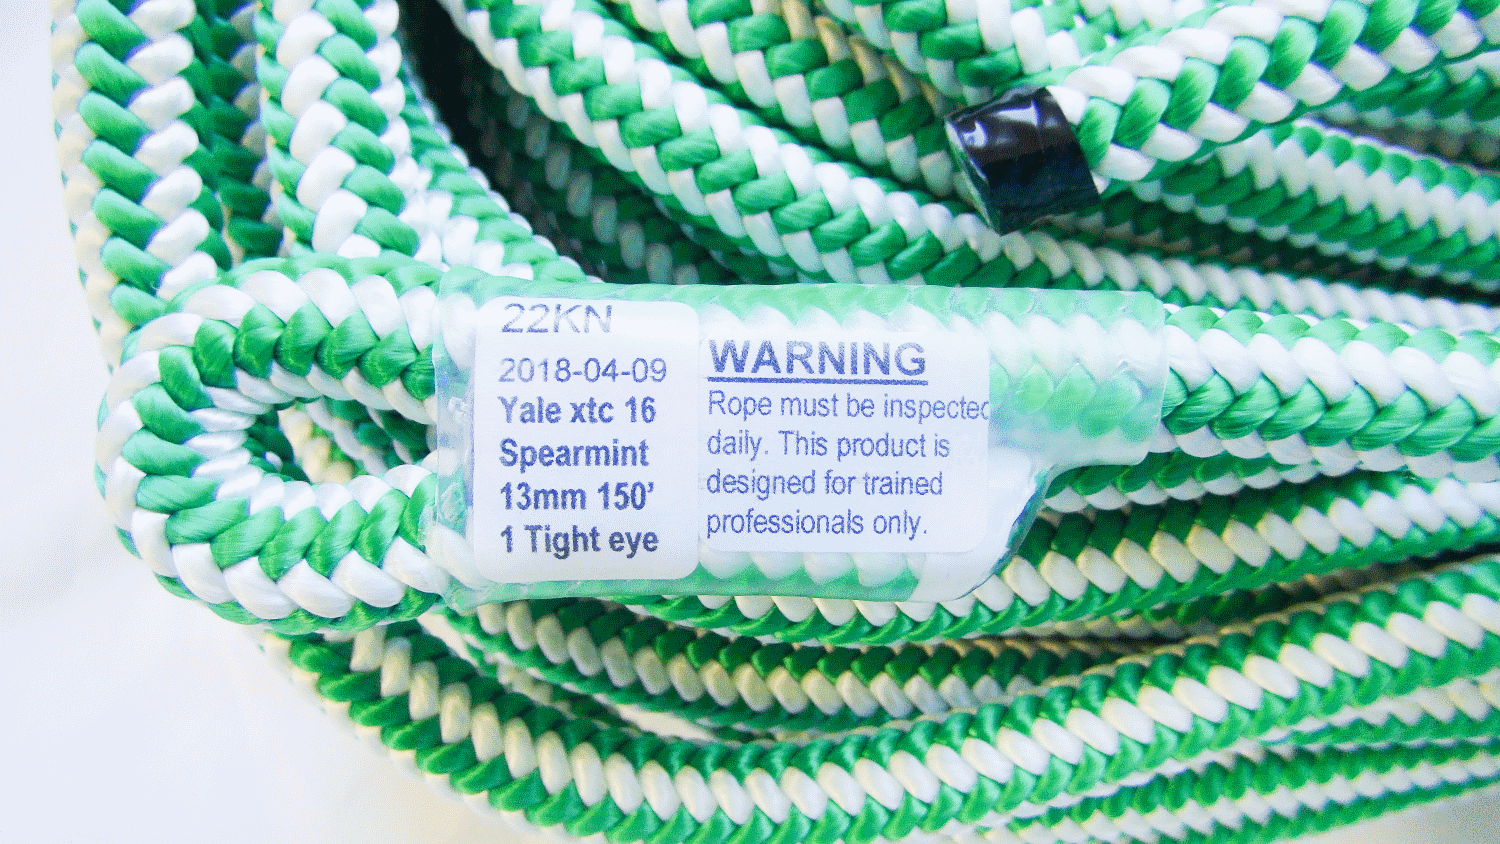 XTC Spearmint Climbing Rope with Tight Eye